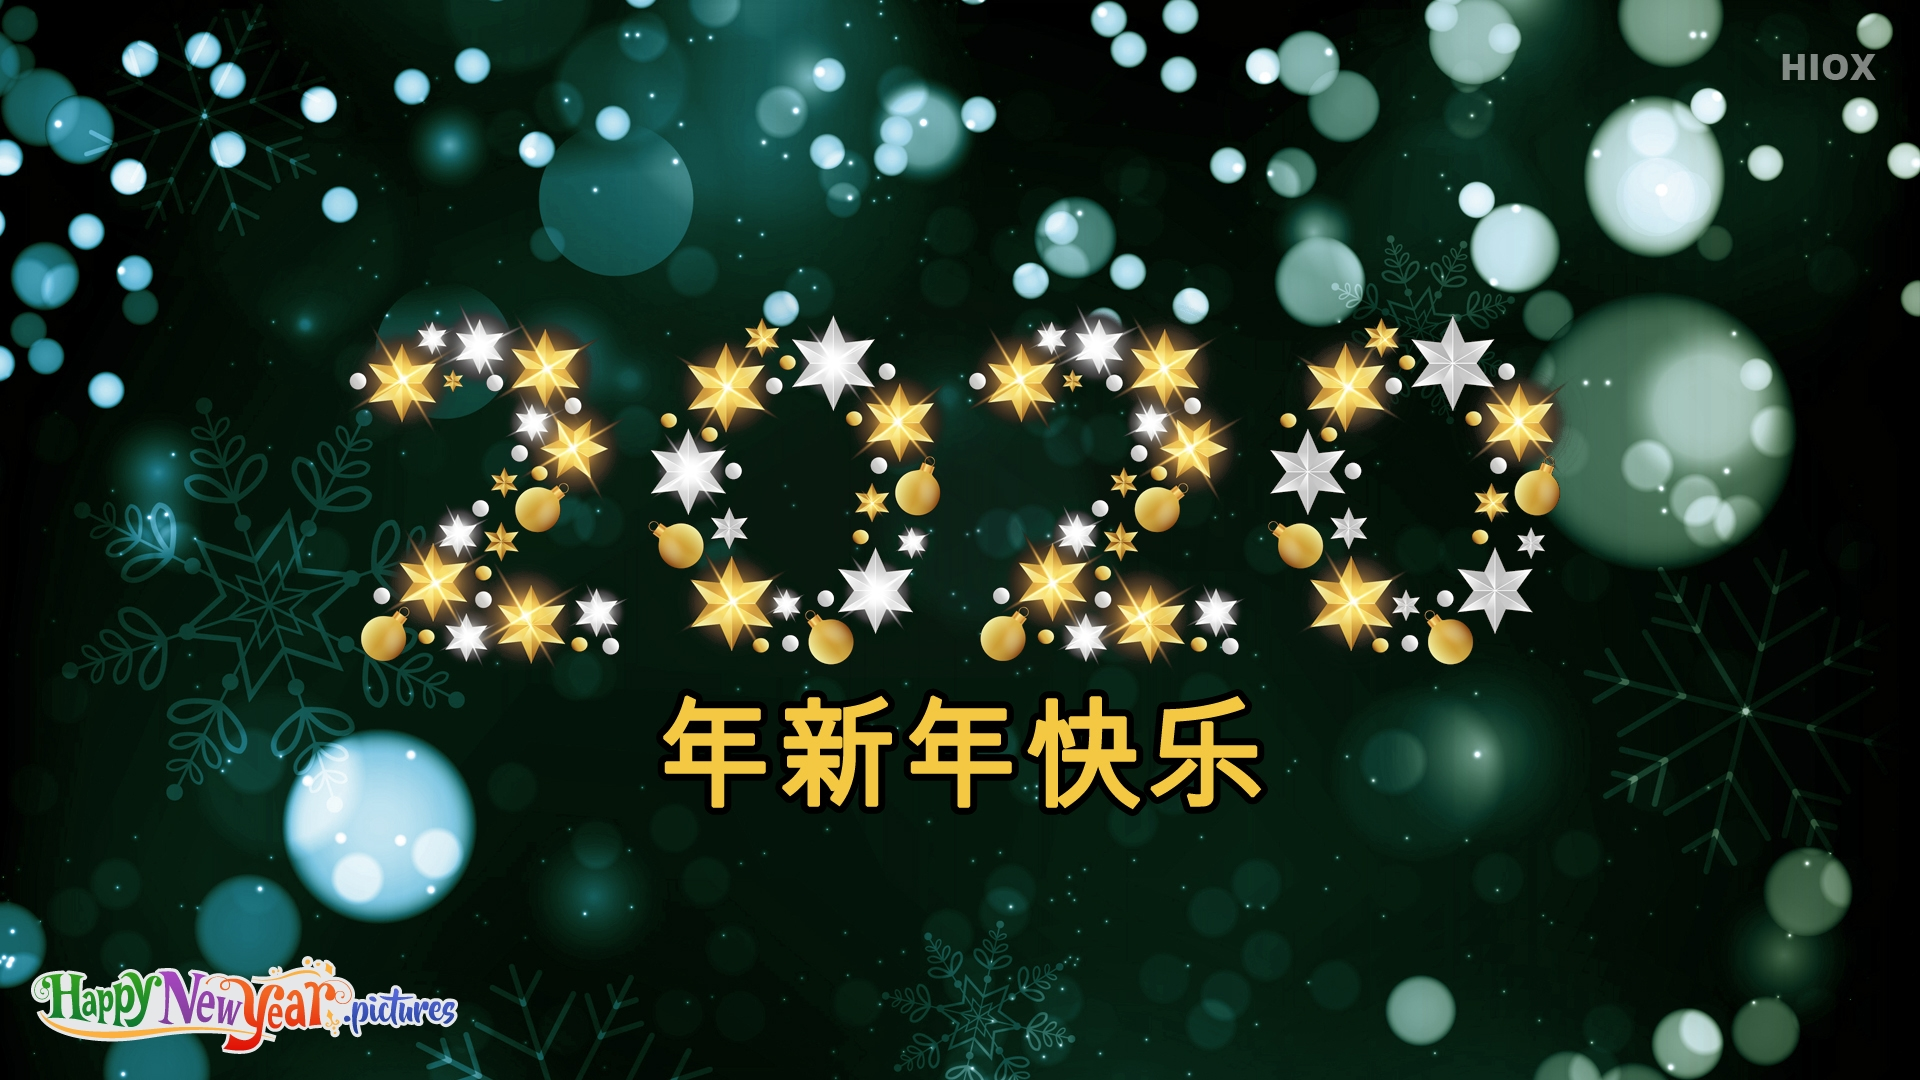 Joyous Happy New Year 2020 Wishes In Chinese